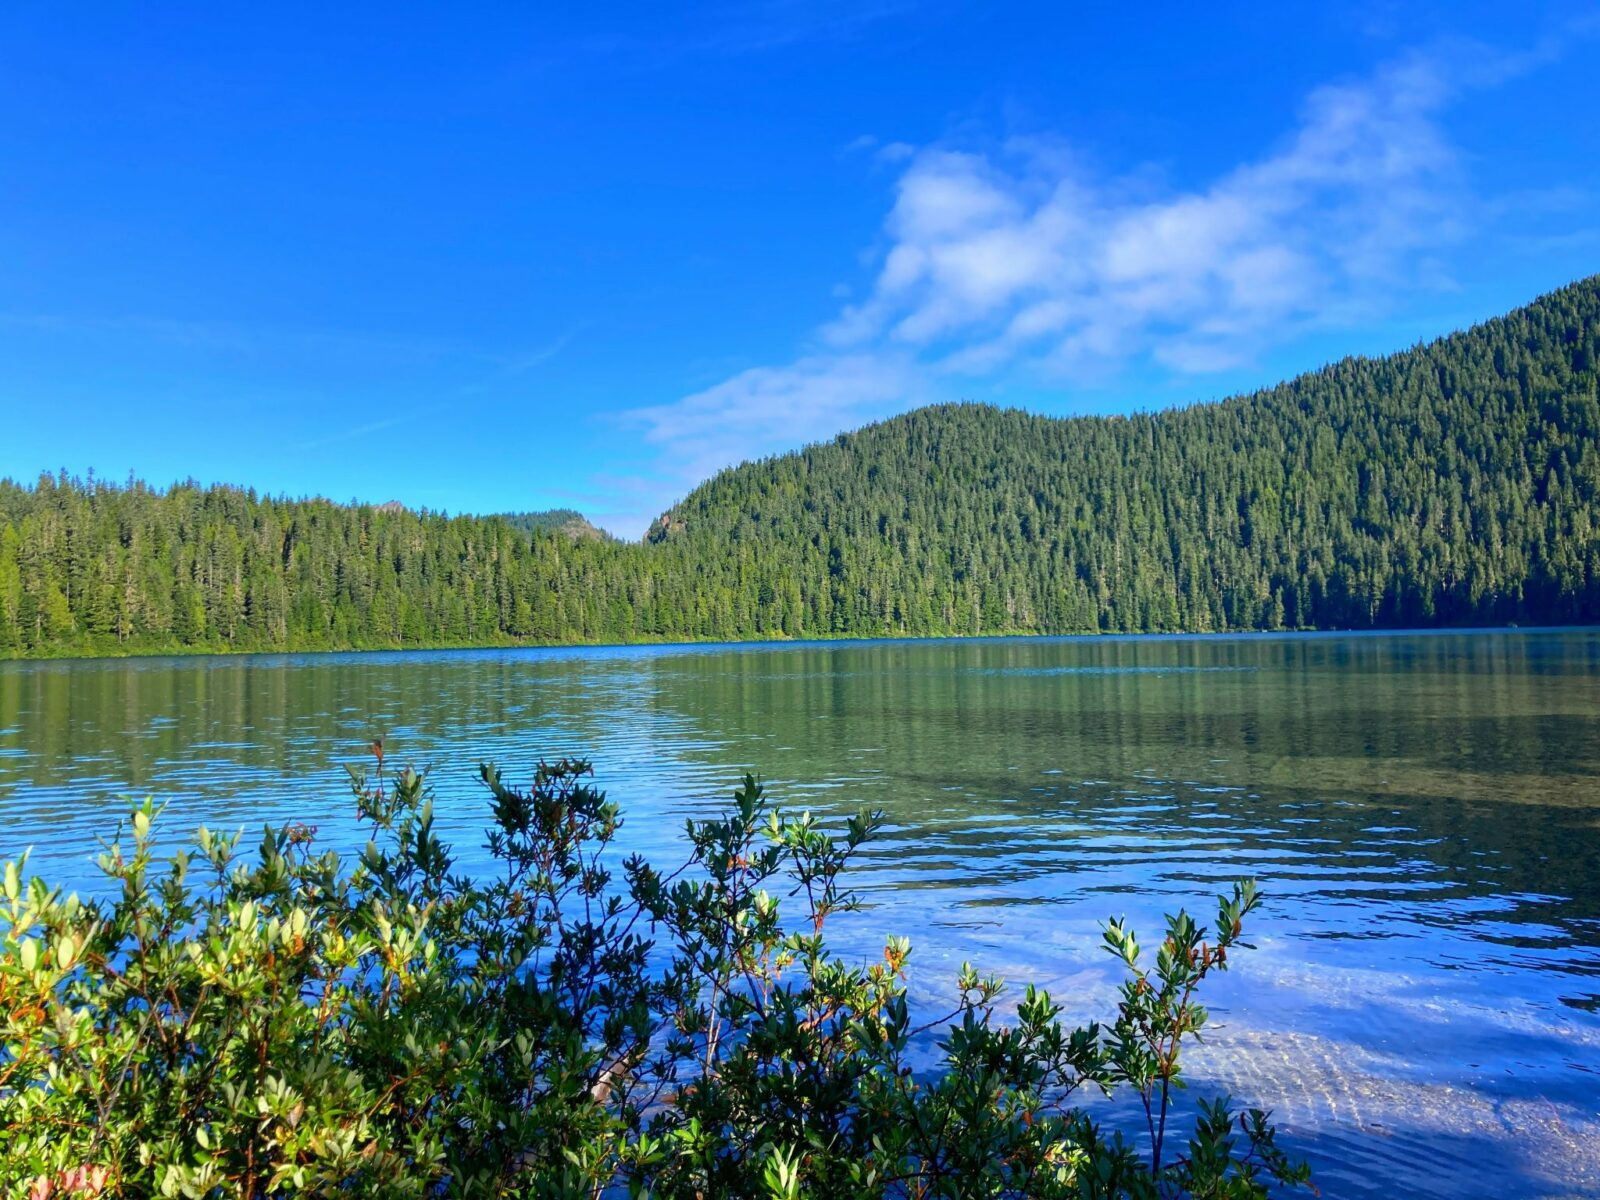 An alpine lake with green bushes in the foreground and forested hillsides in the background on a sunny day